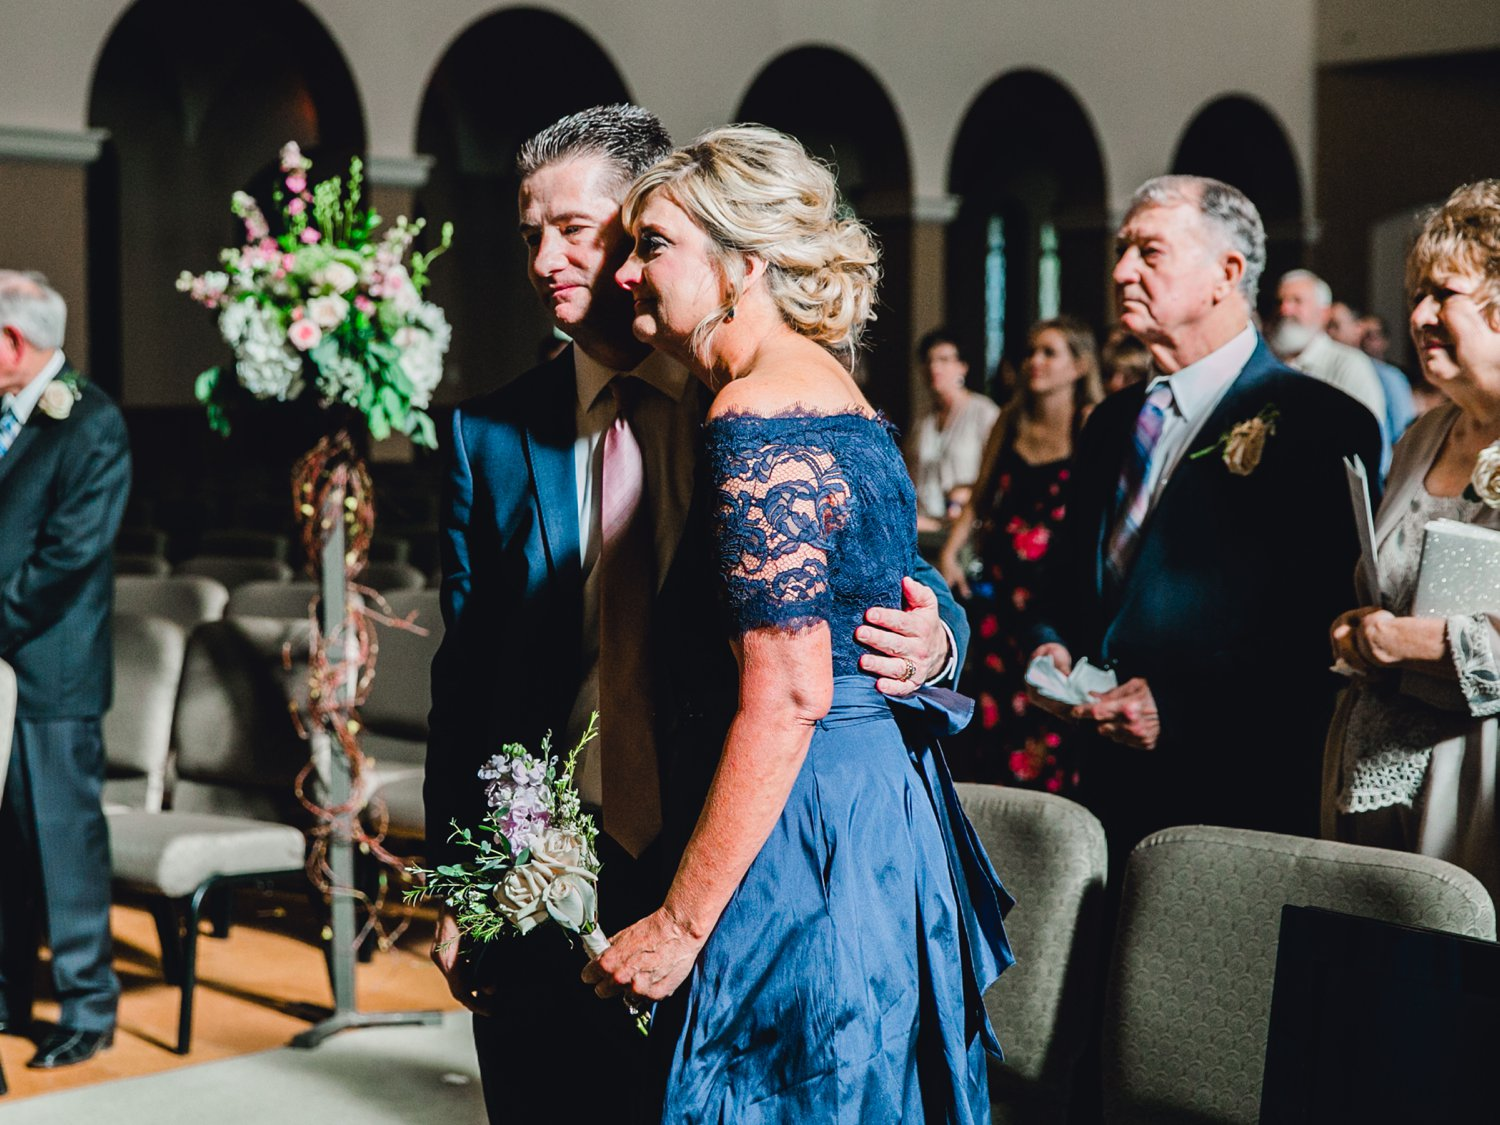 MADI_AND_WILL_STEPHENS_ALLEEJ_LUBBOCK_PHOTOGRAPHER_TEXAS+TECH+FRAZIER_ALUMNI0102.jpg